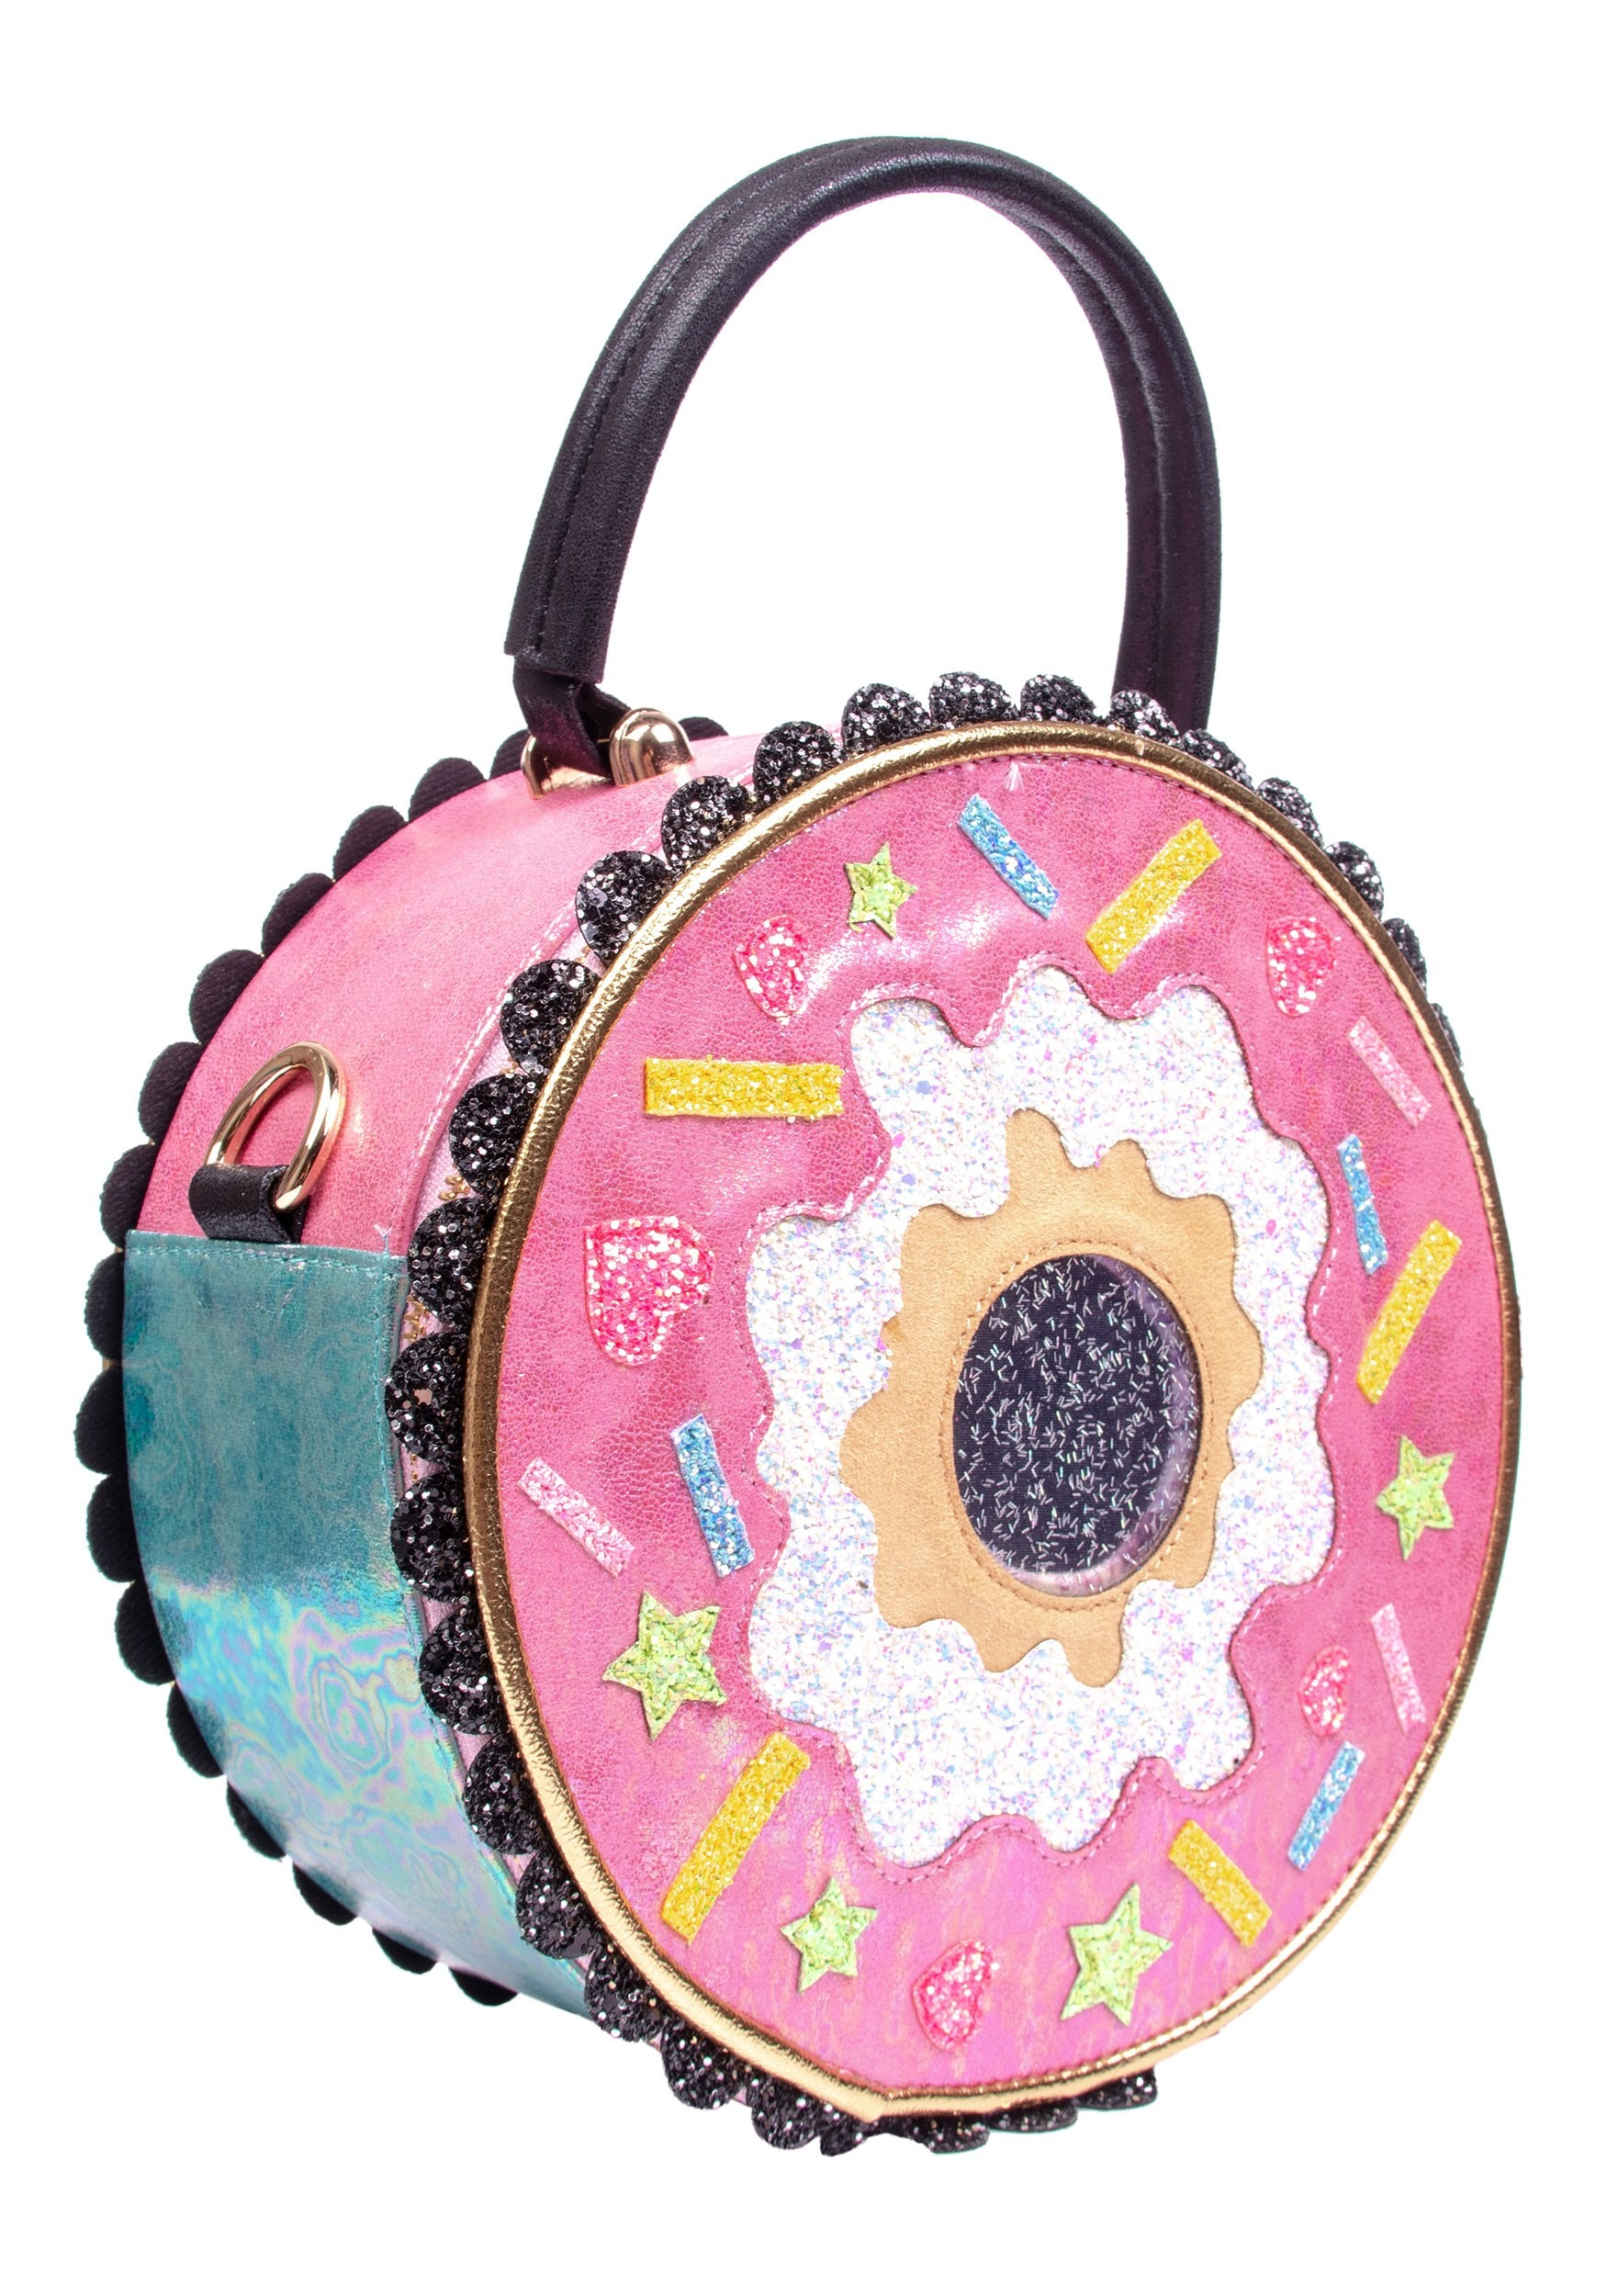 Irregular Choice Donut Worry Pink & White Purse (IRRB122-04A-ST IRRB122-04A) photo